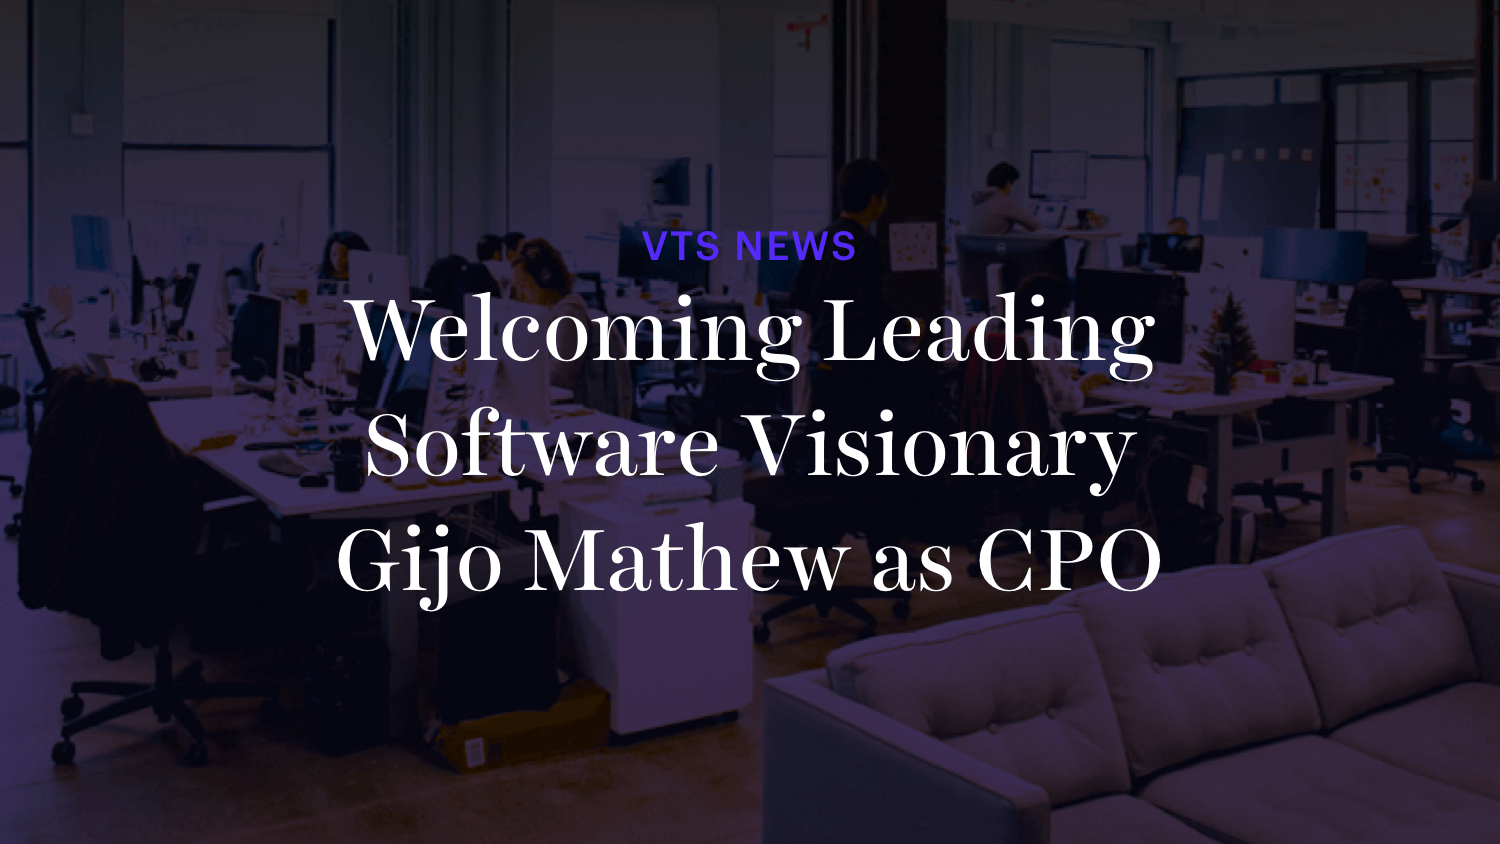 Welcoming Software Visionary Gijo Mathew as VTS' CPO